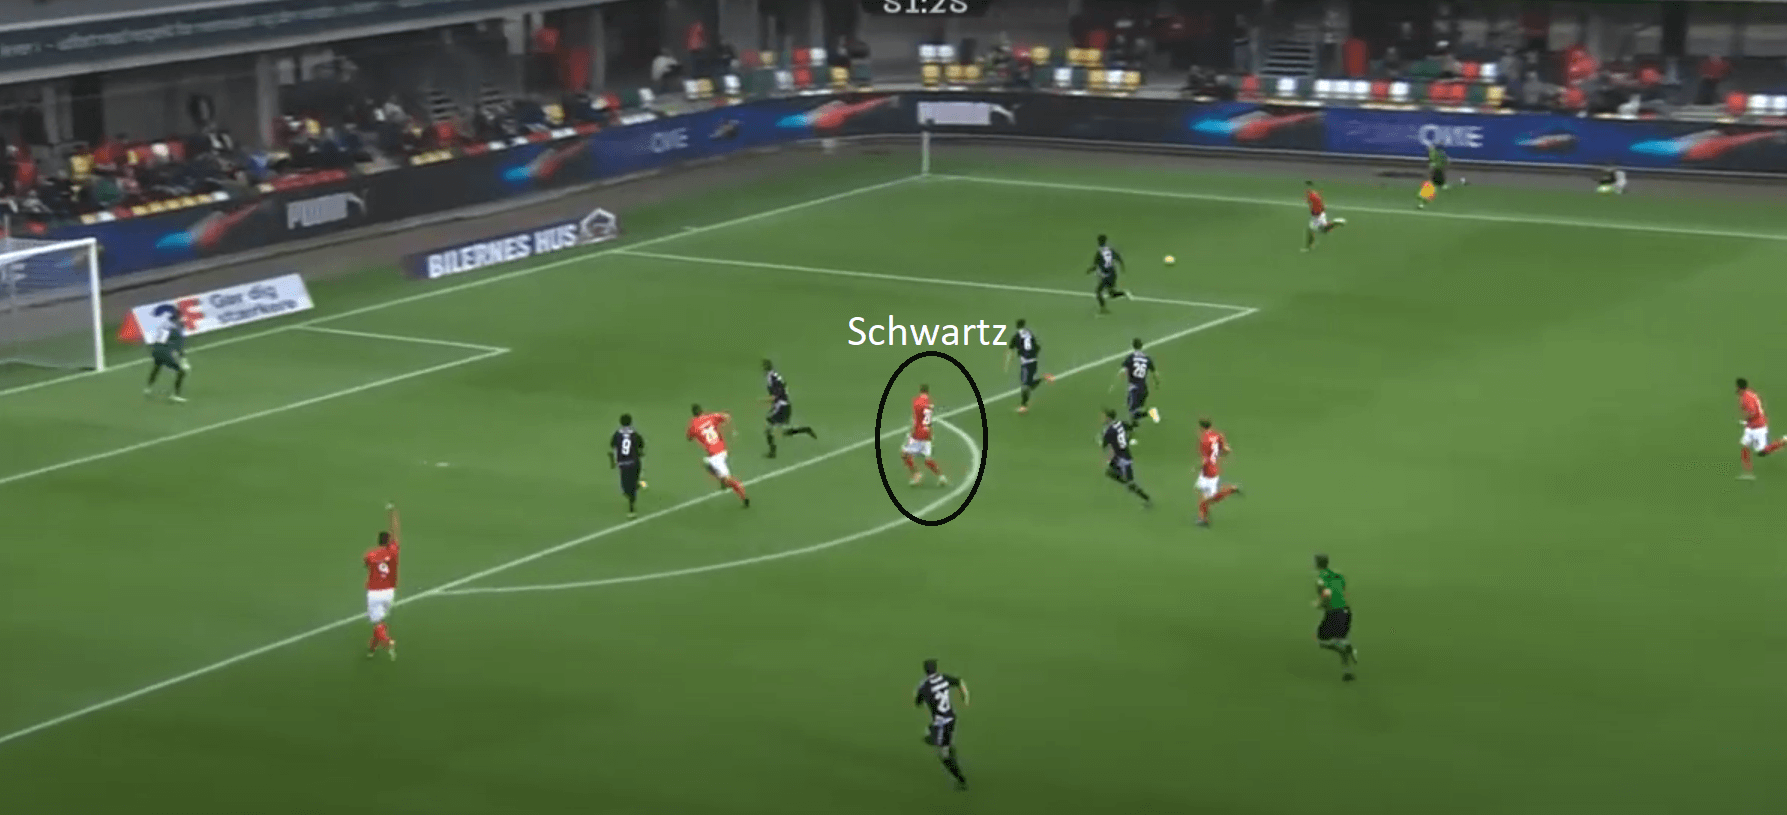 Ronnie Schwartz 2019/20 scout report - tactical analysis tactics